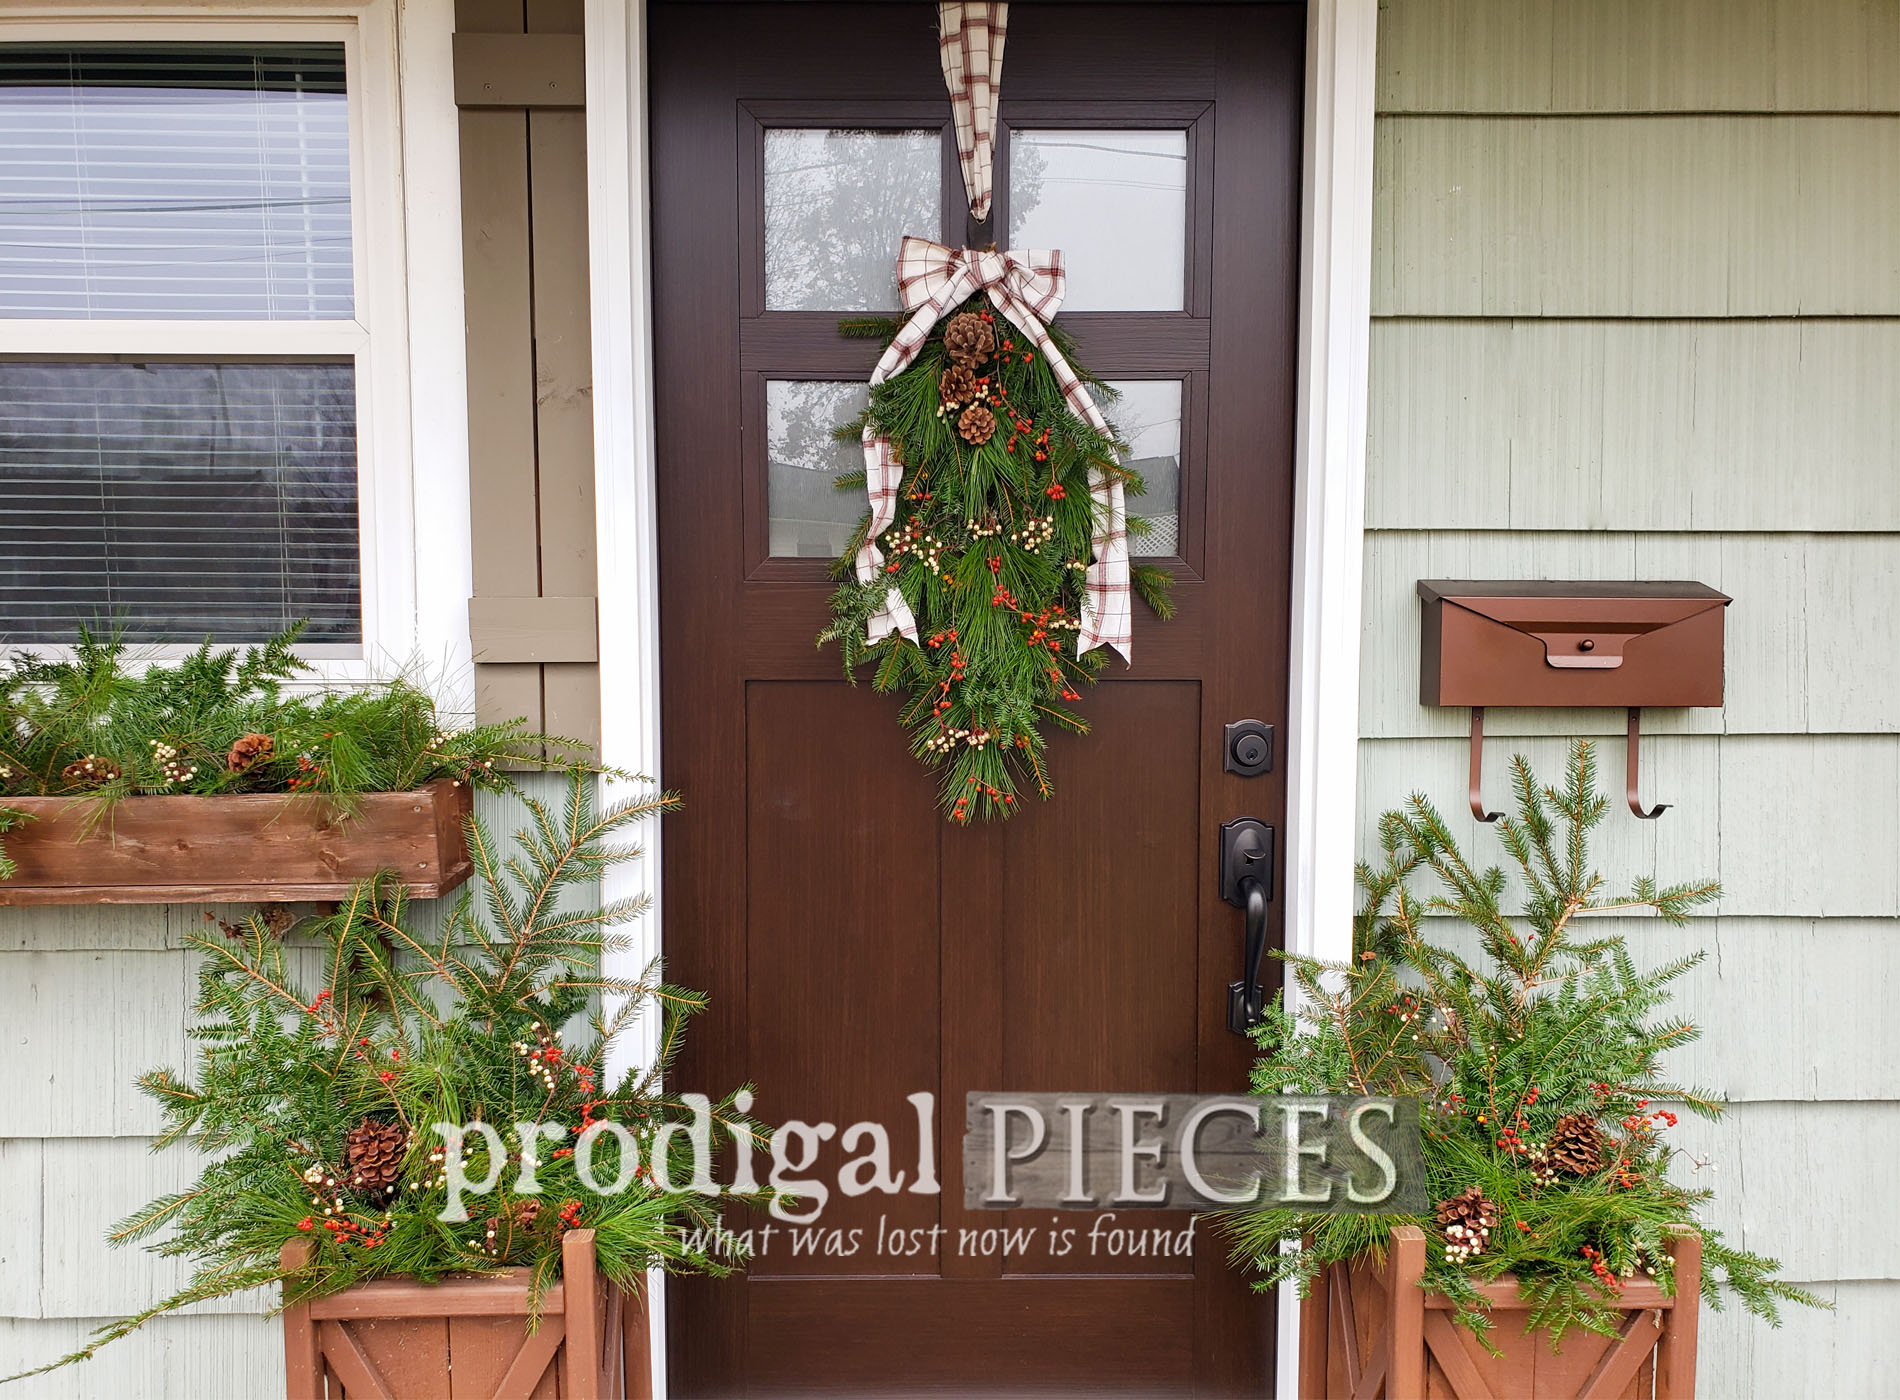 You can create this affordable DIY Christmas Swag and Planters from foraged greens | Easy, low-cost, & fun! Come see the video tutorial by Larissa at Prodigal Pieces | prodigalpieces.com #prodigalpieces #diy #home #holiday #christmas #homedecor #farmhouse #budgetfriendly